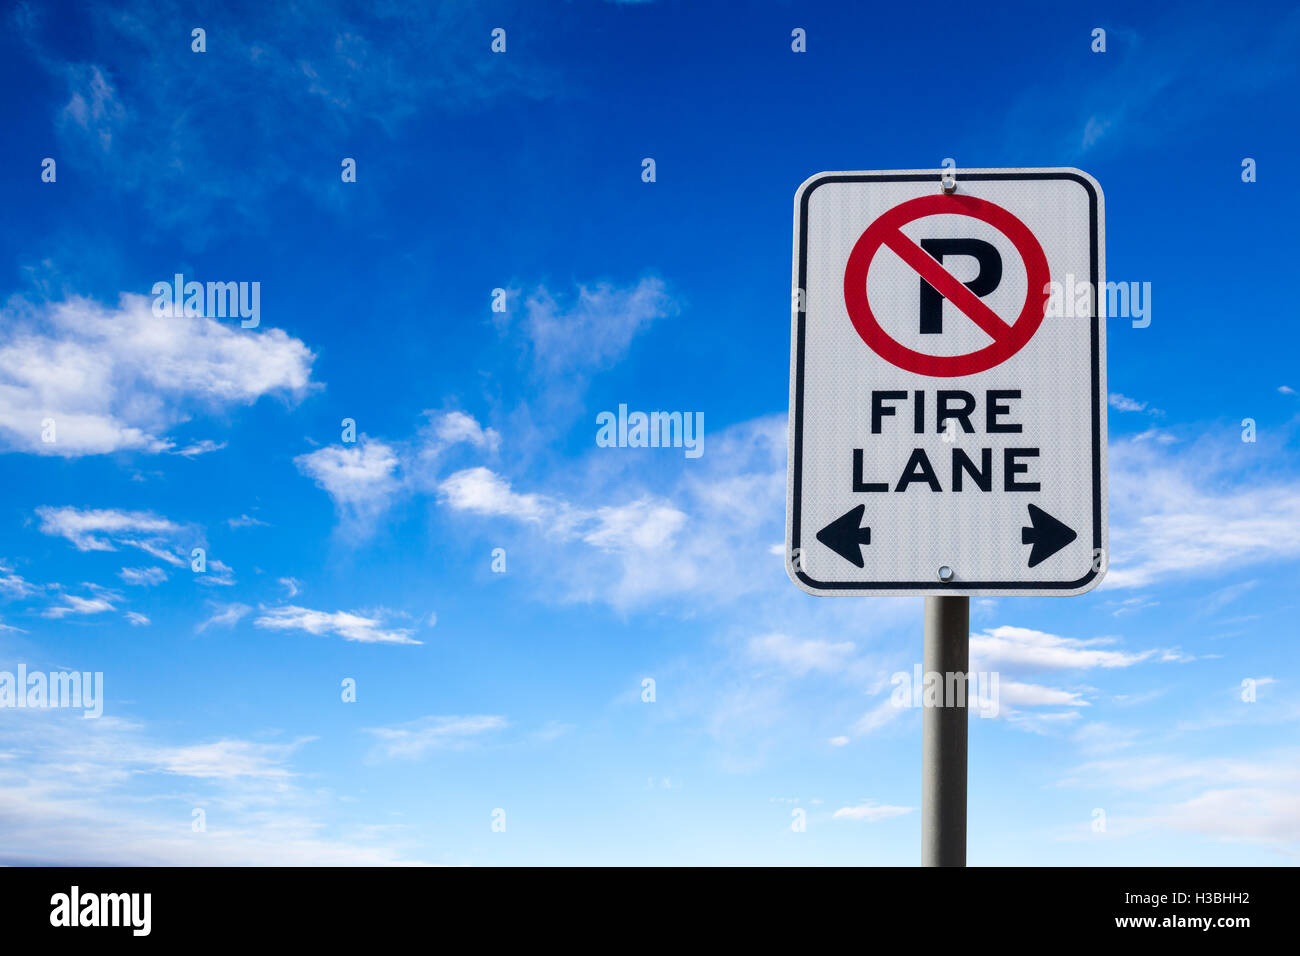 A Fire Lane No Parking sign against a blue cloudy sky with copy space. Horizontal orientation. - Stock Image